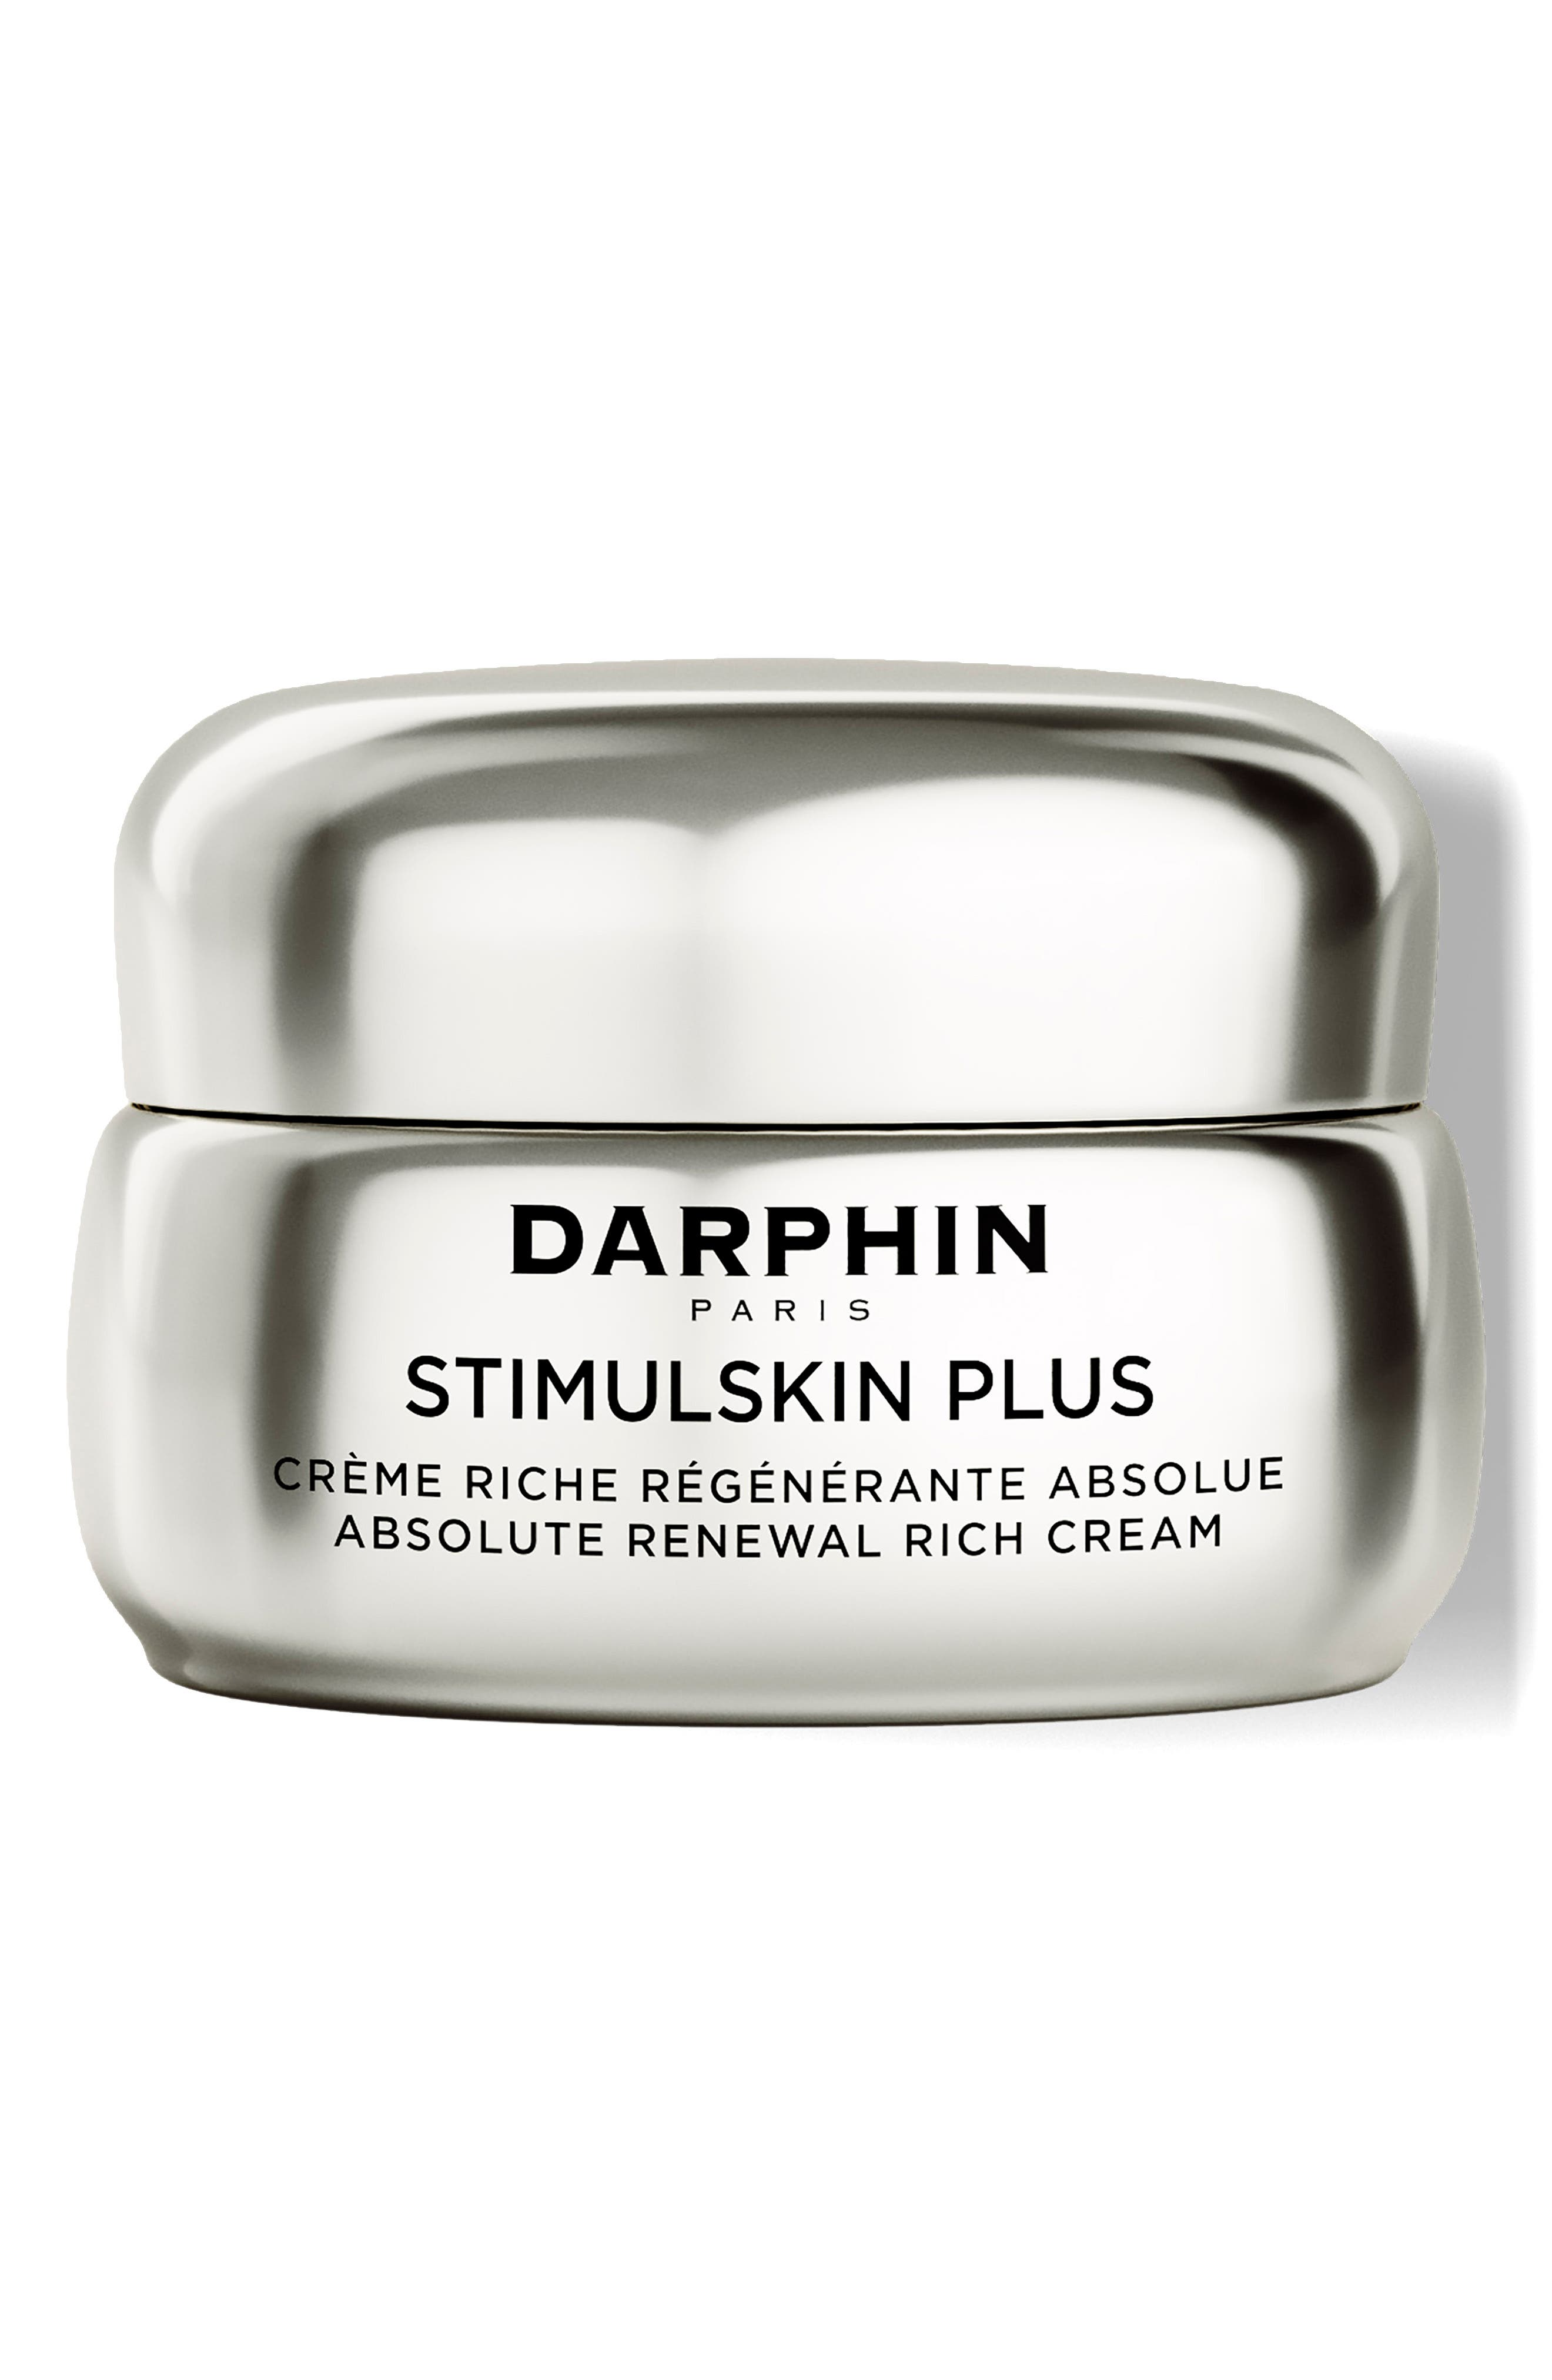 Stimulskin Plus Absolute Renewal Rich Cream For Dry To Very Dry Skin Types